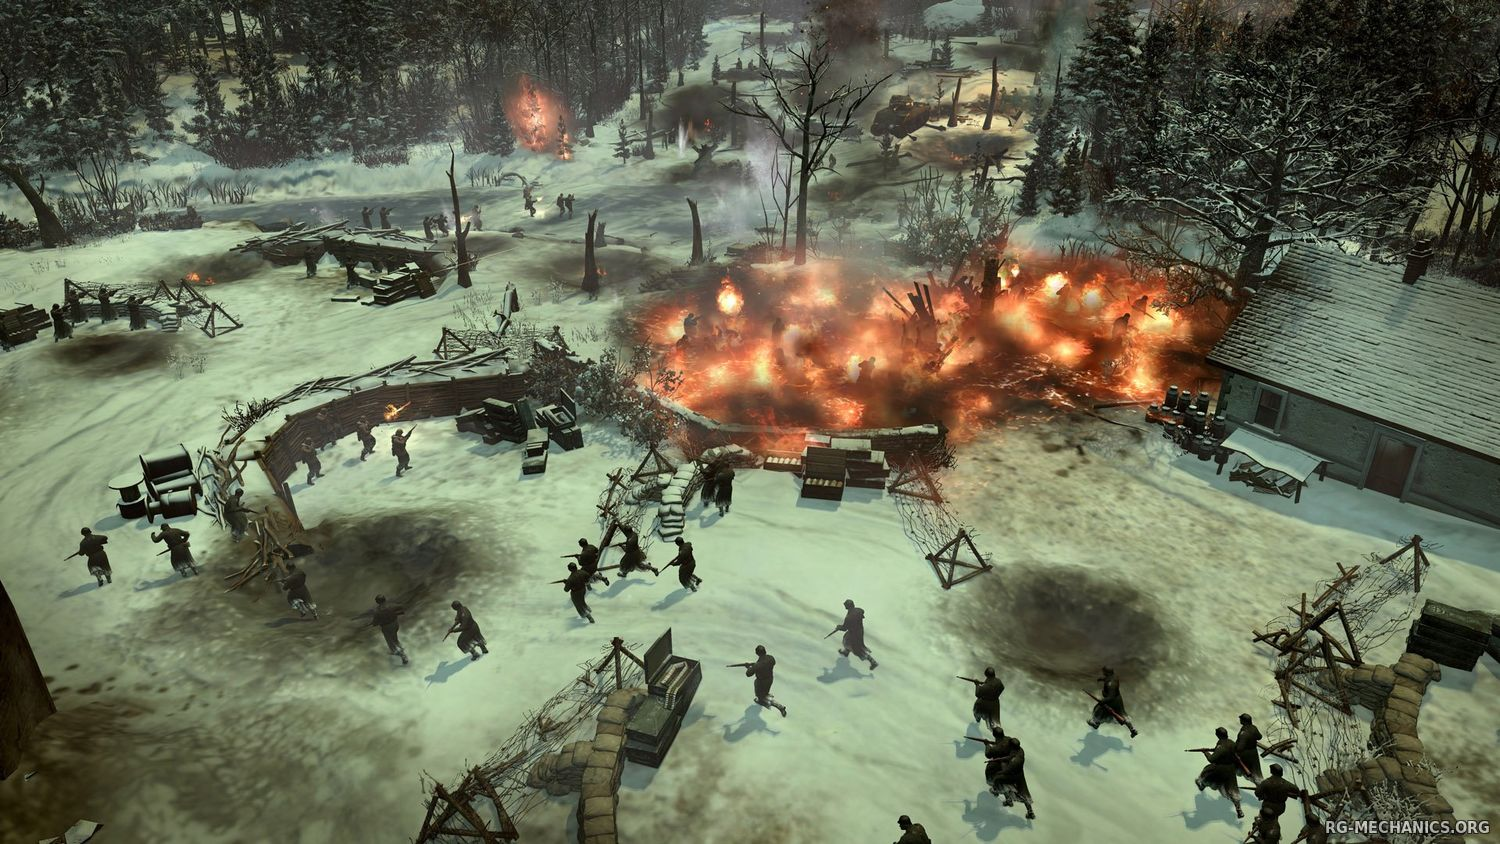 Скриншот 2 к игре Company of Heroes 2: Master Collection [v 4.0.0.21701 + DLC's] (2014) PC | RePack от R.G. Механики